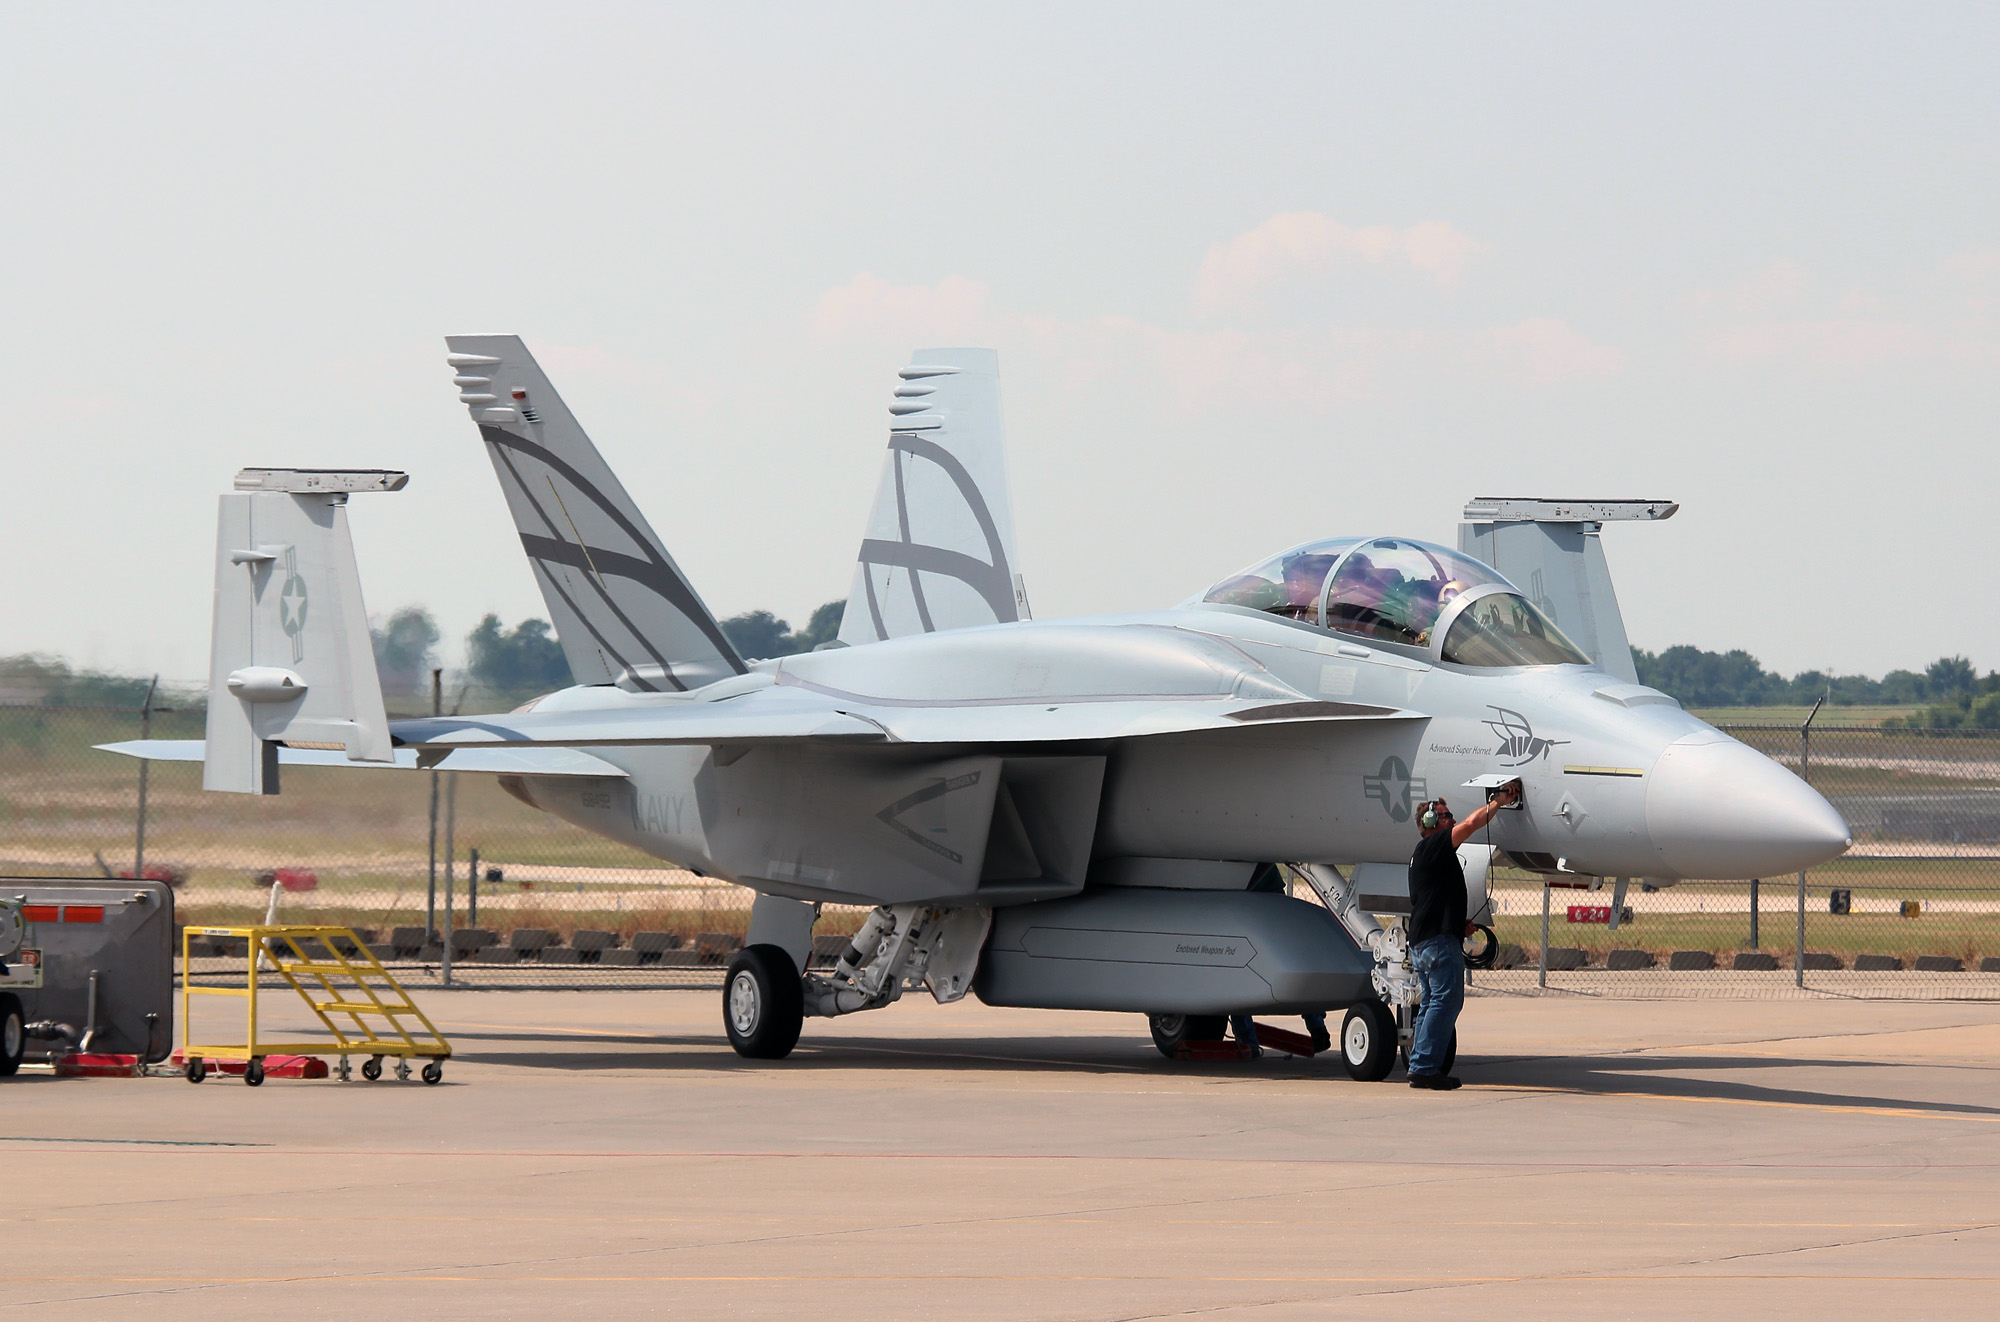 http://www.vaq34.com/junk/advanced_superhornet_004.jpg